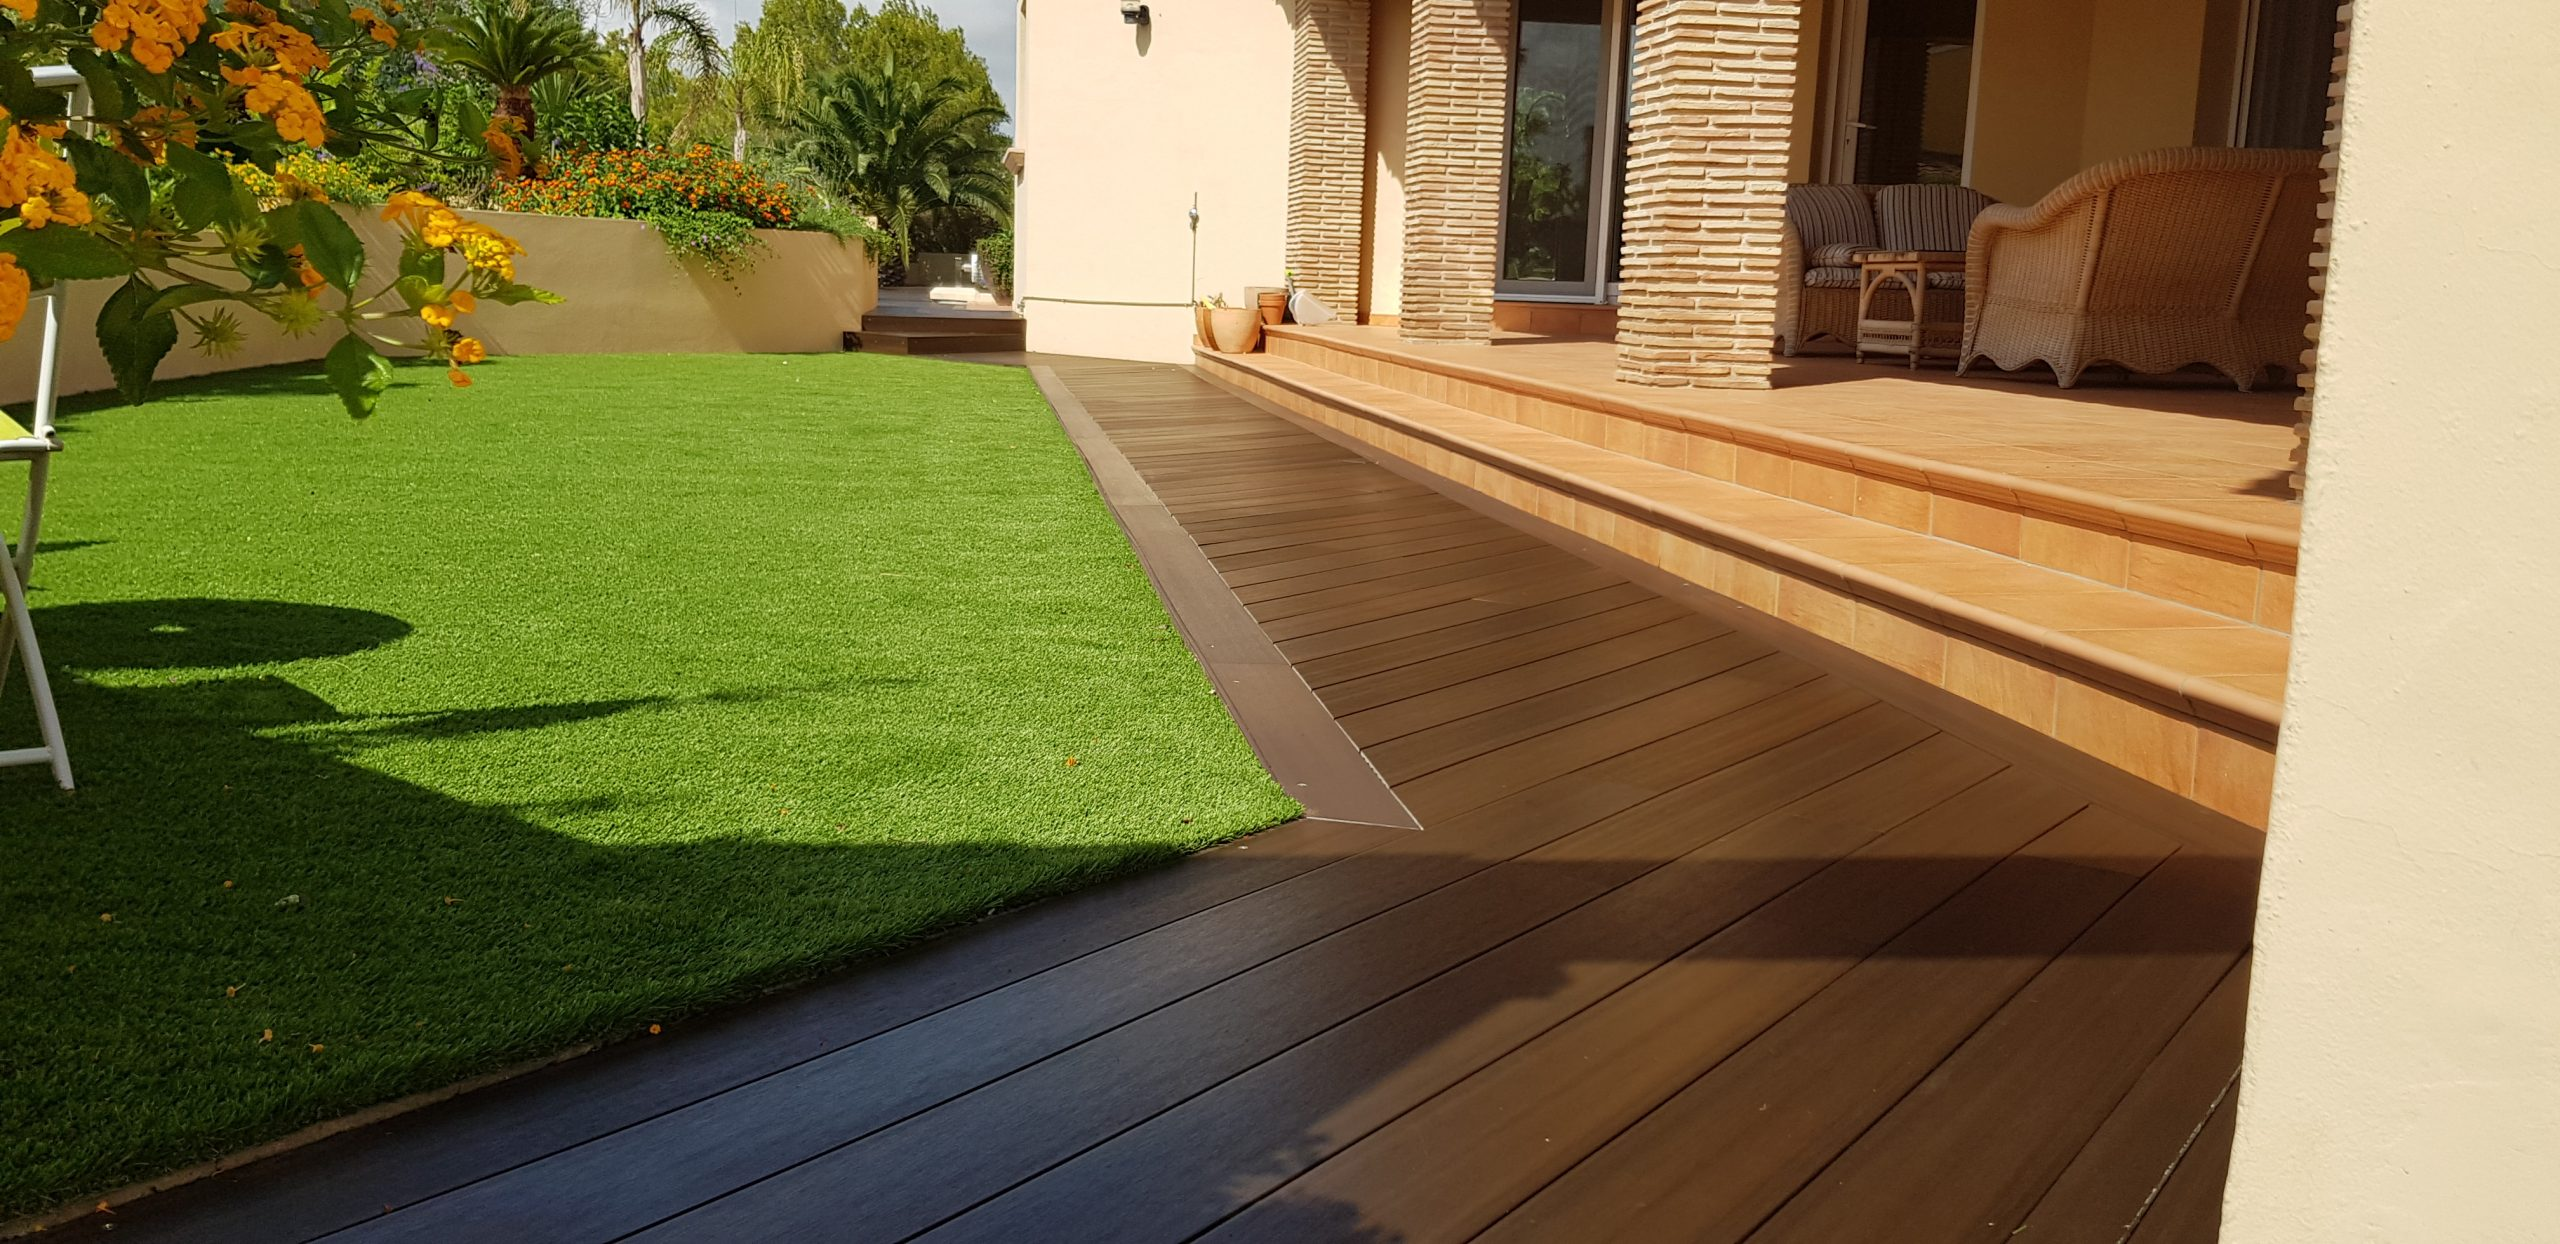 Treated Wooden decking